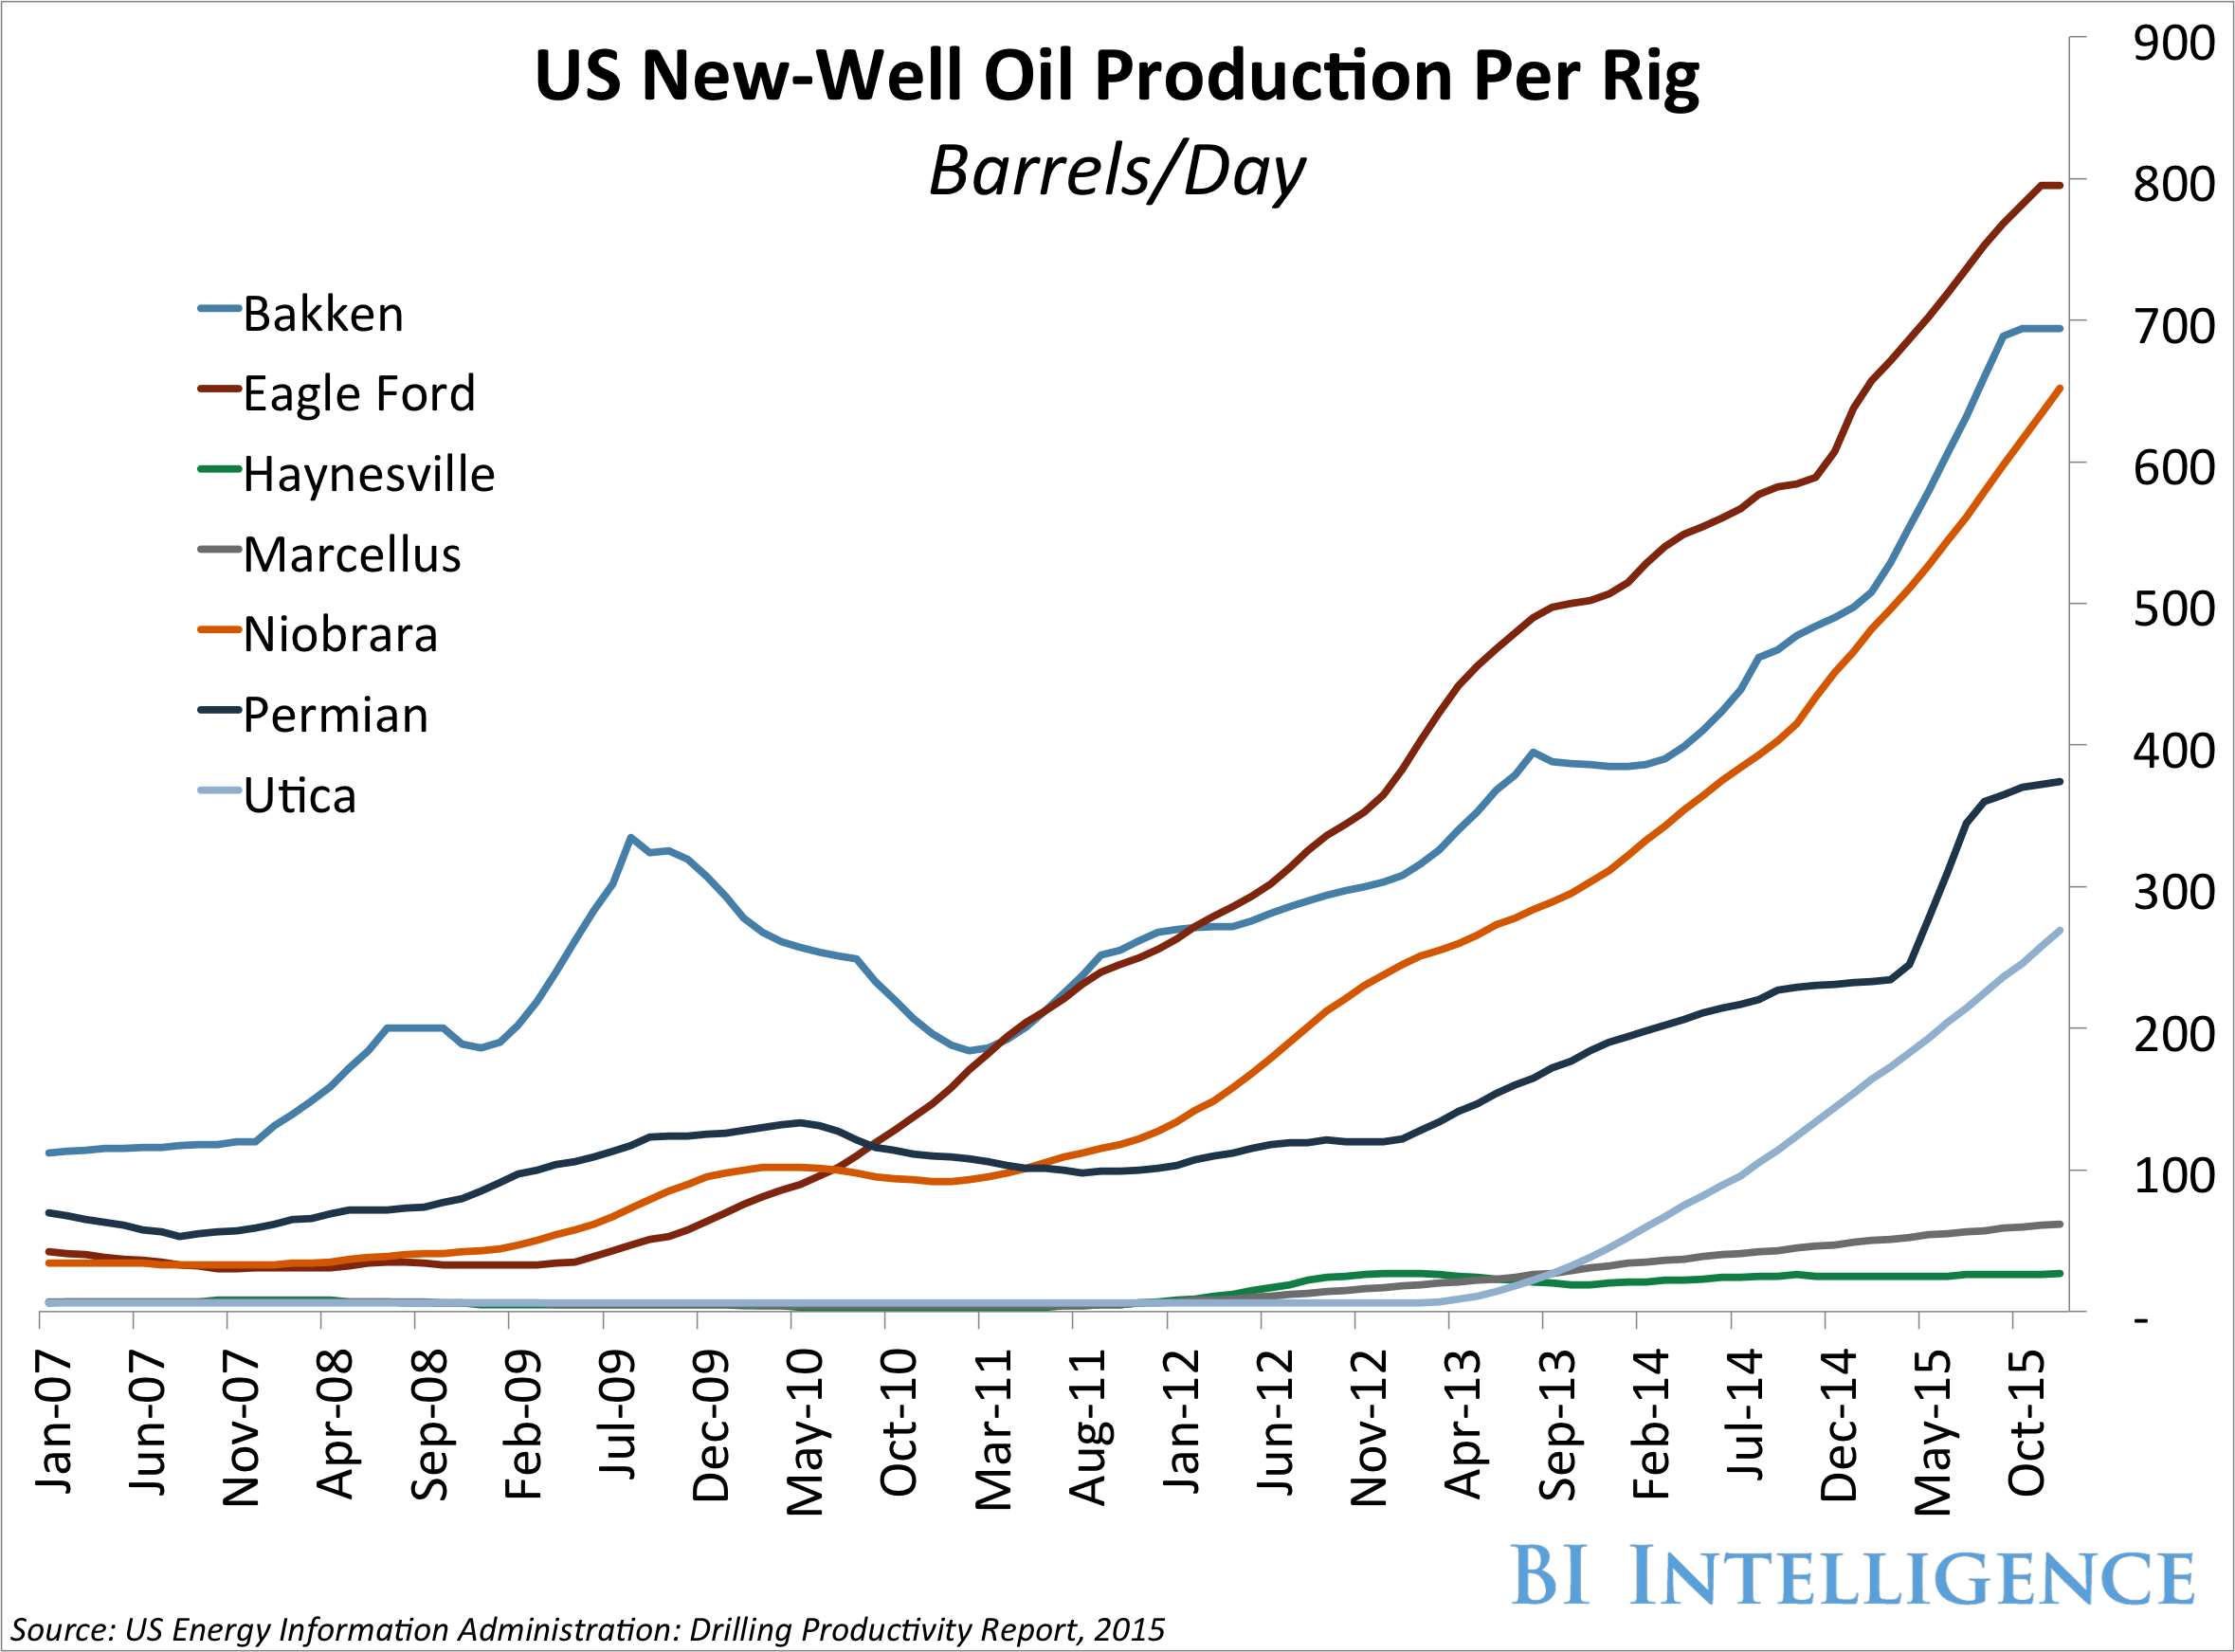 US New Well Oil Production Per Rig